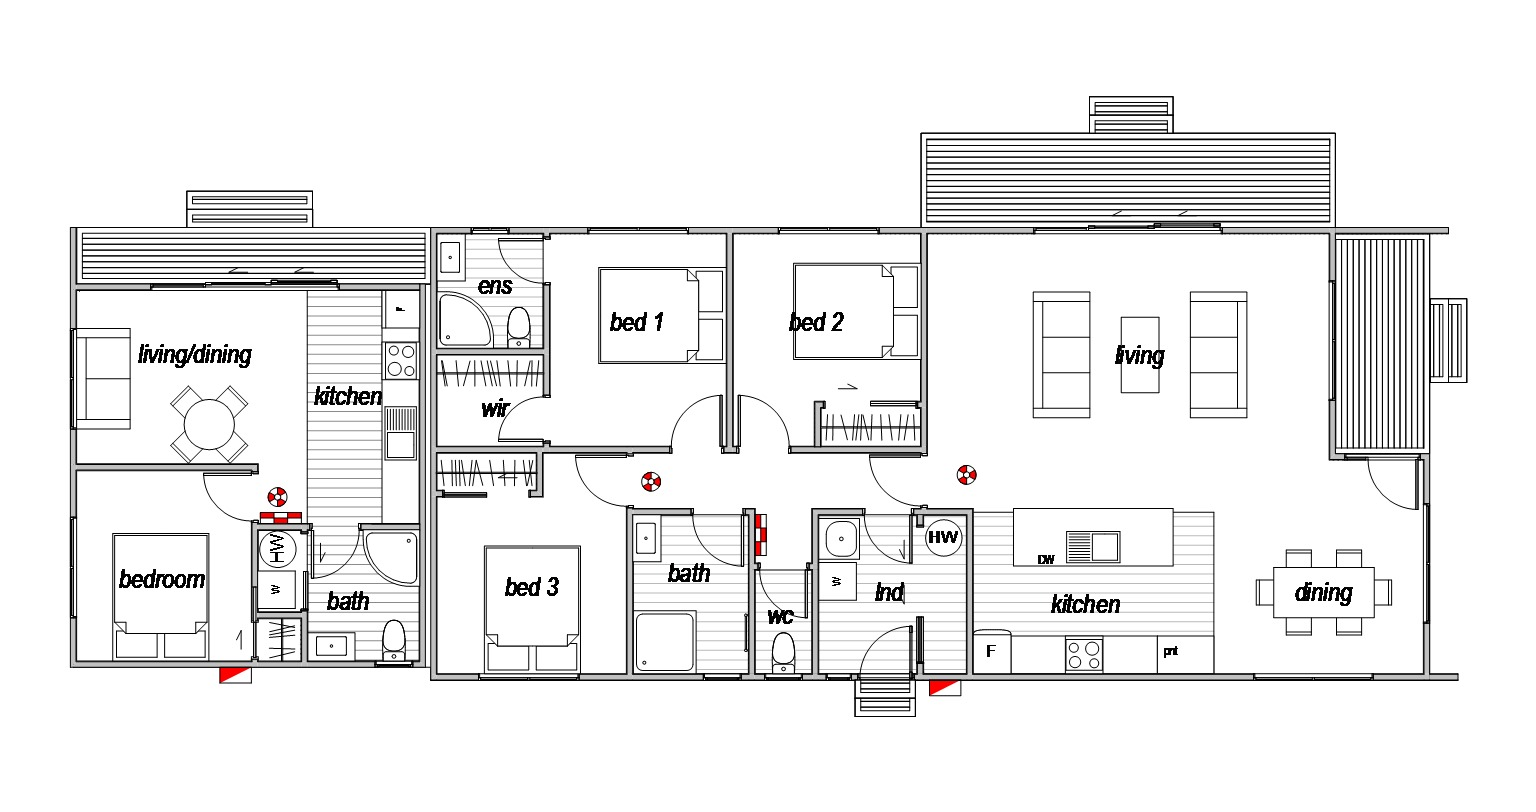 Aviemore floorplan for a 2 bedroom home with self contained 3rd bedroom uniti